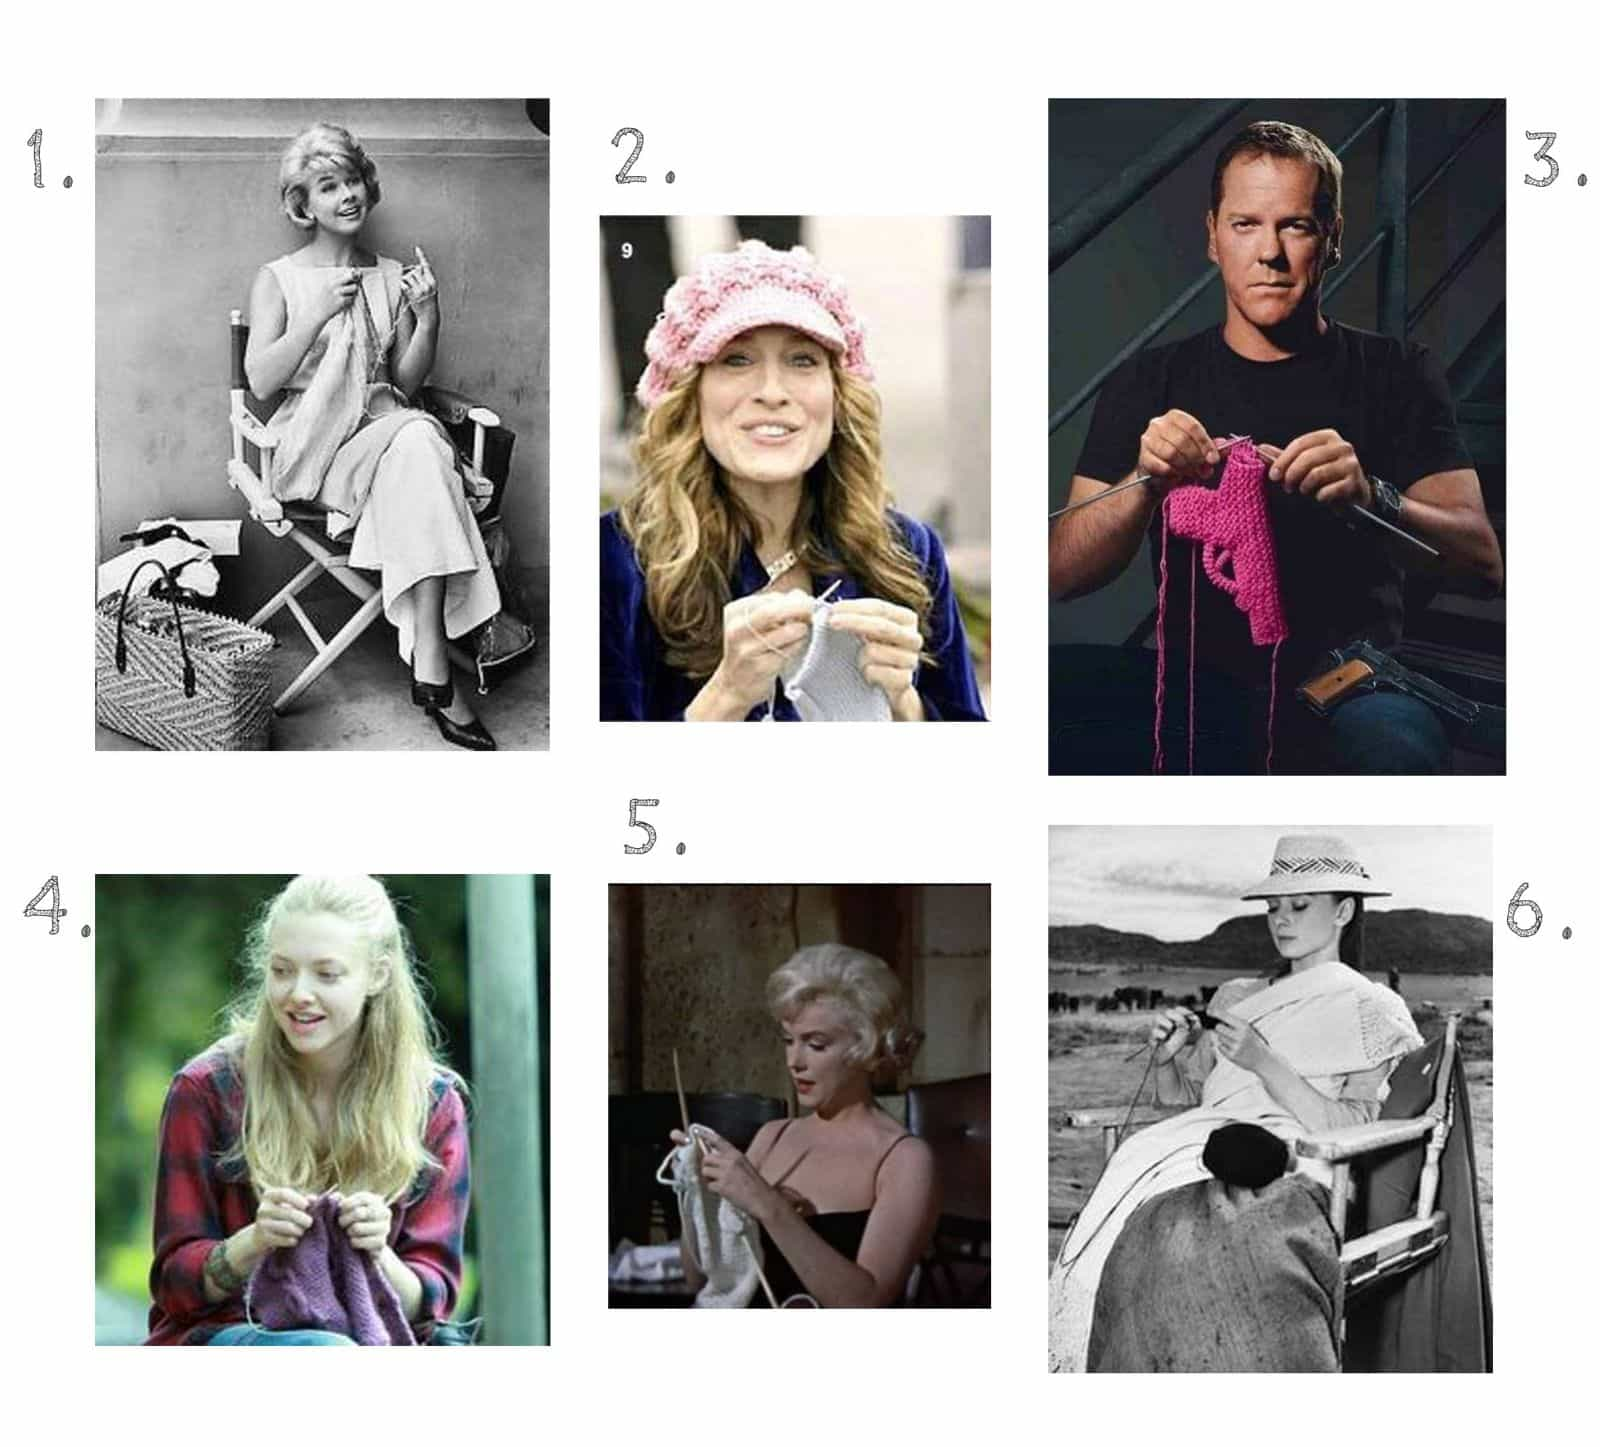 celebs who knit